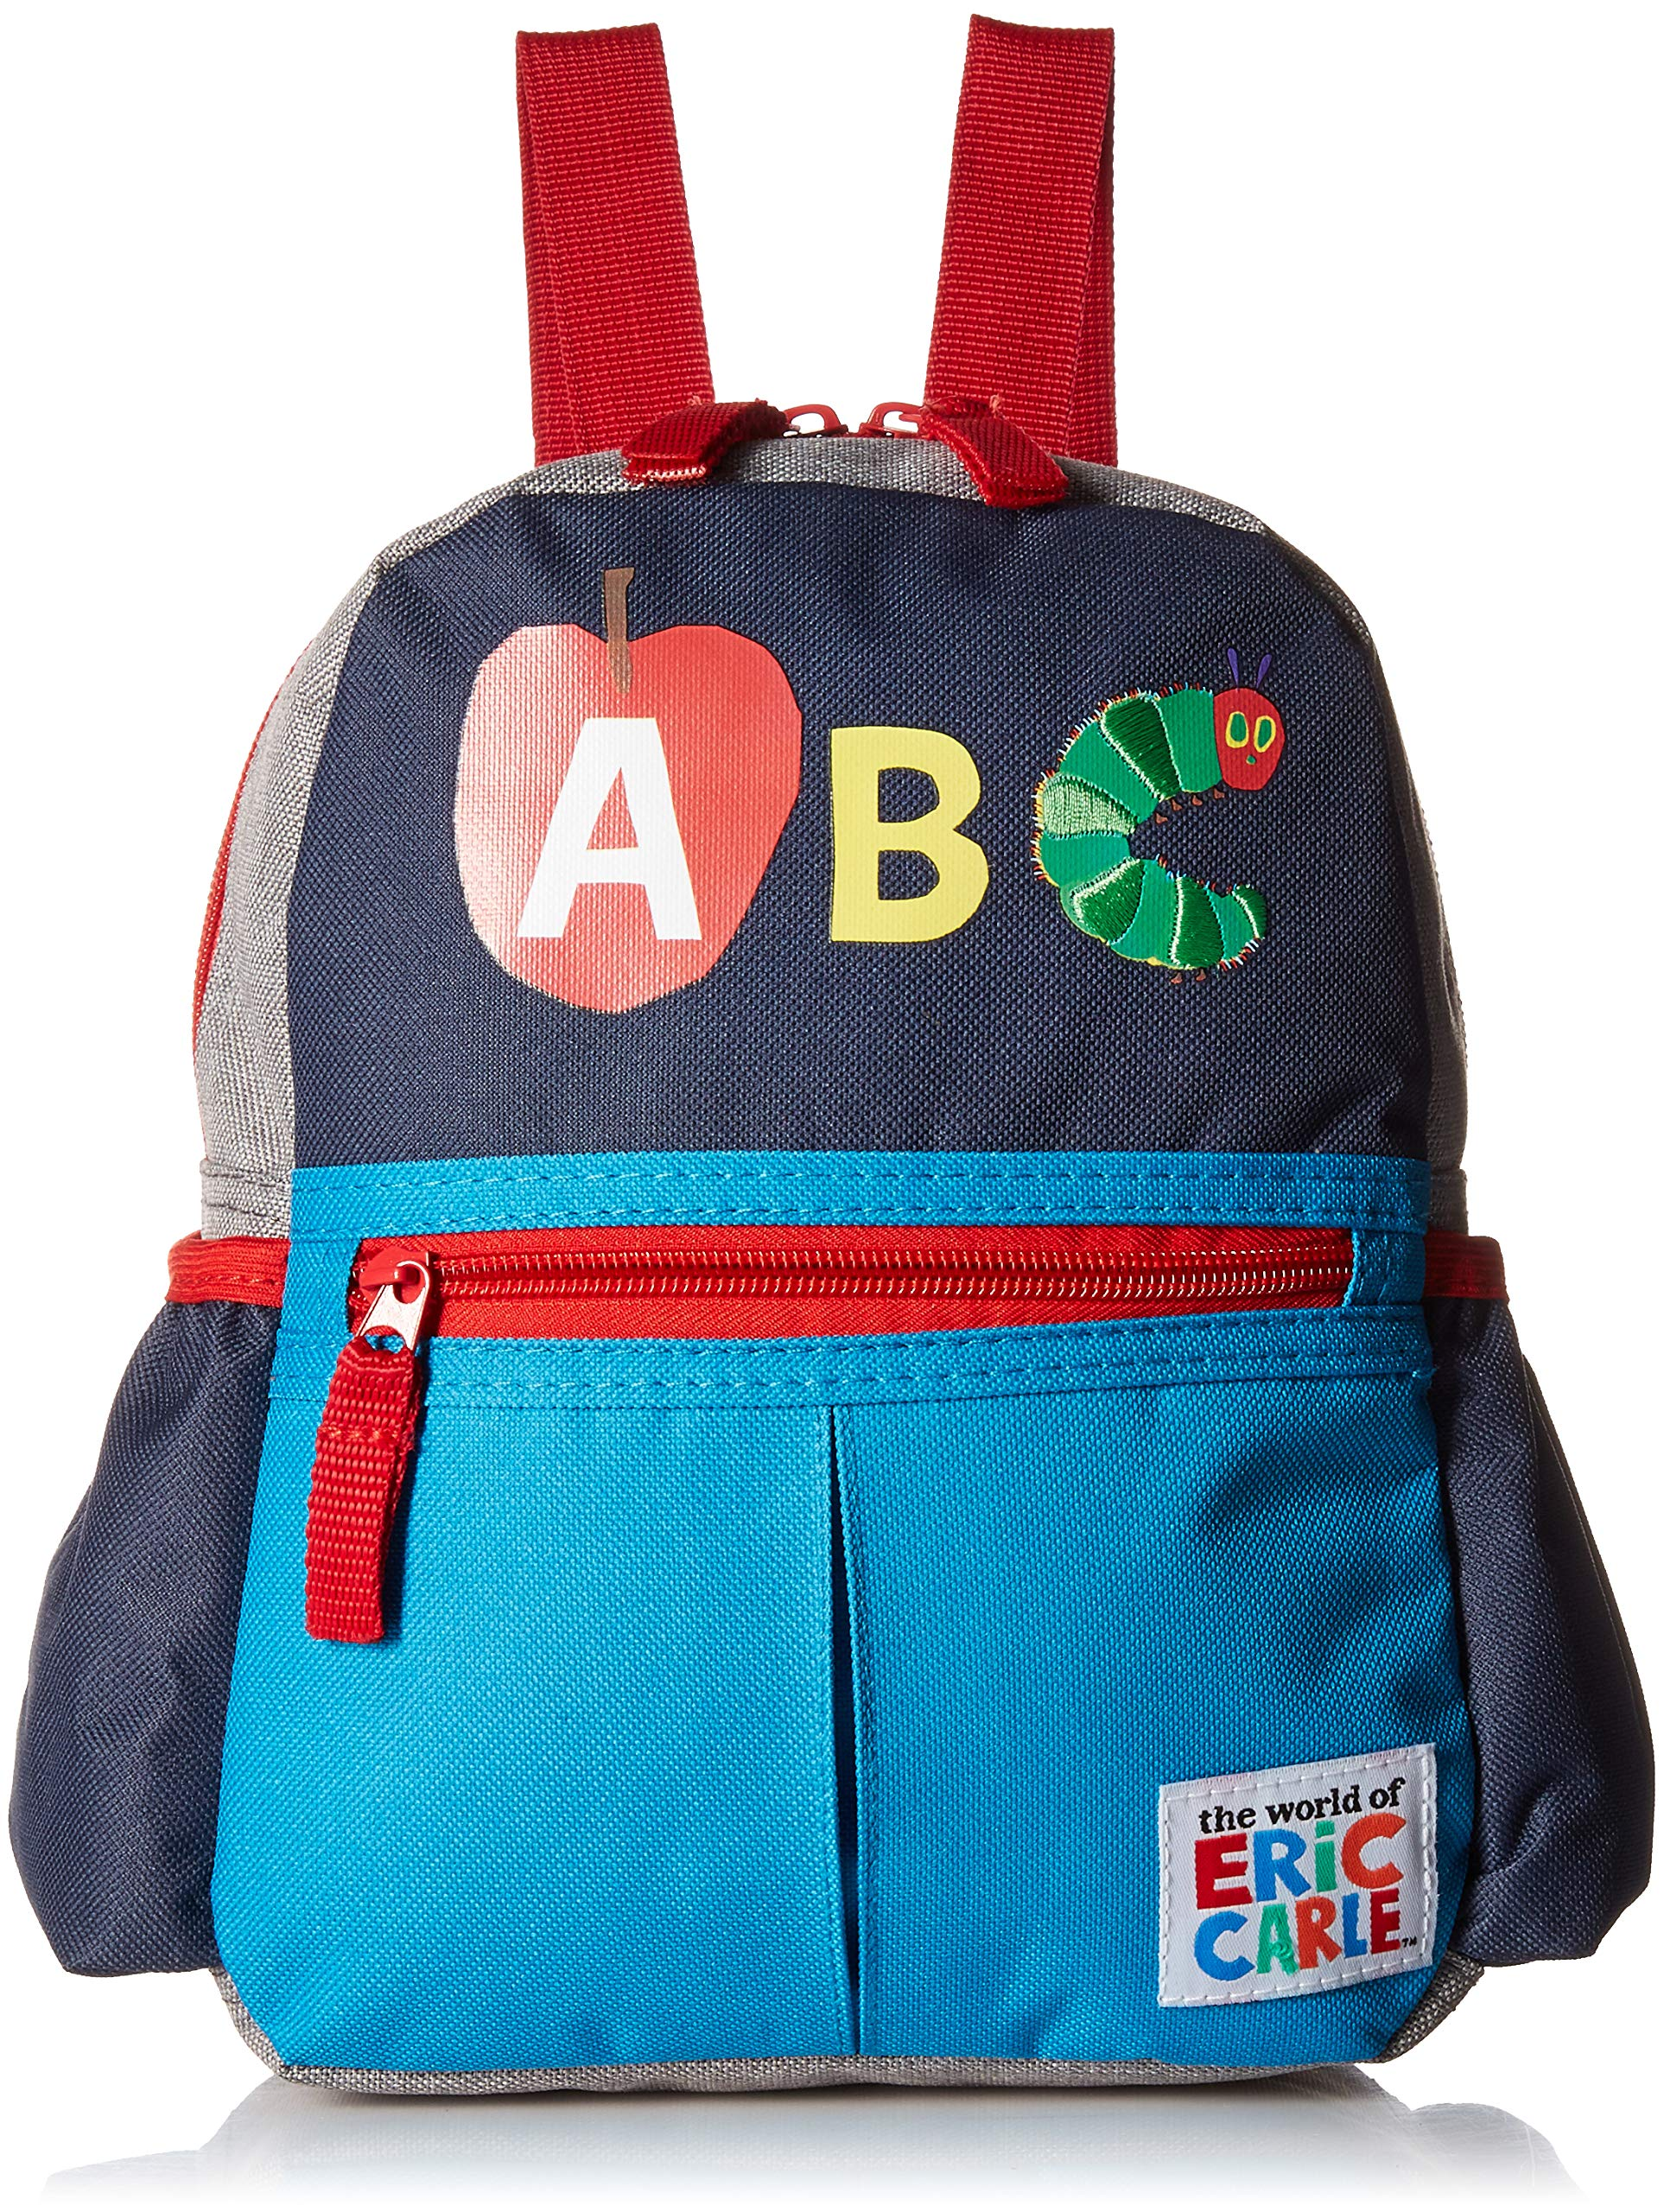 Eric Carle Backpack with Safety Harness Leash, ABC, The Very Hungry Caterpillar Child Baby Toddler Travel